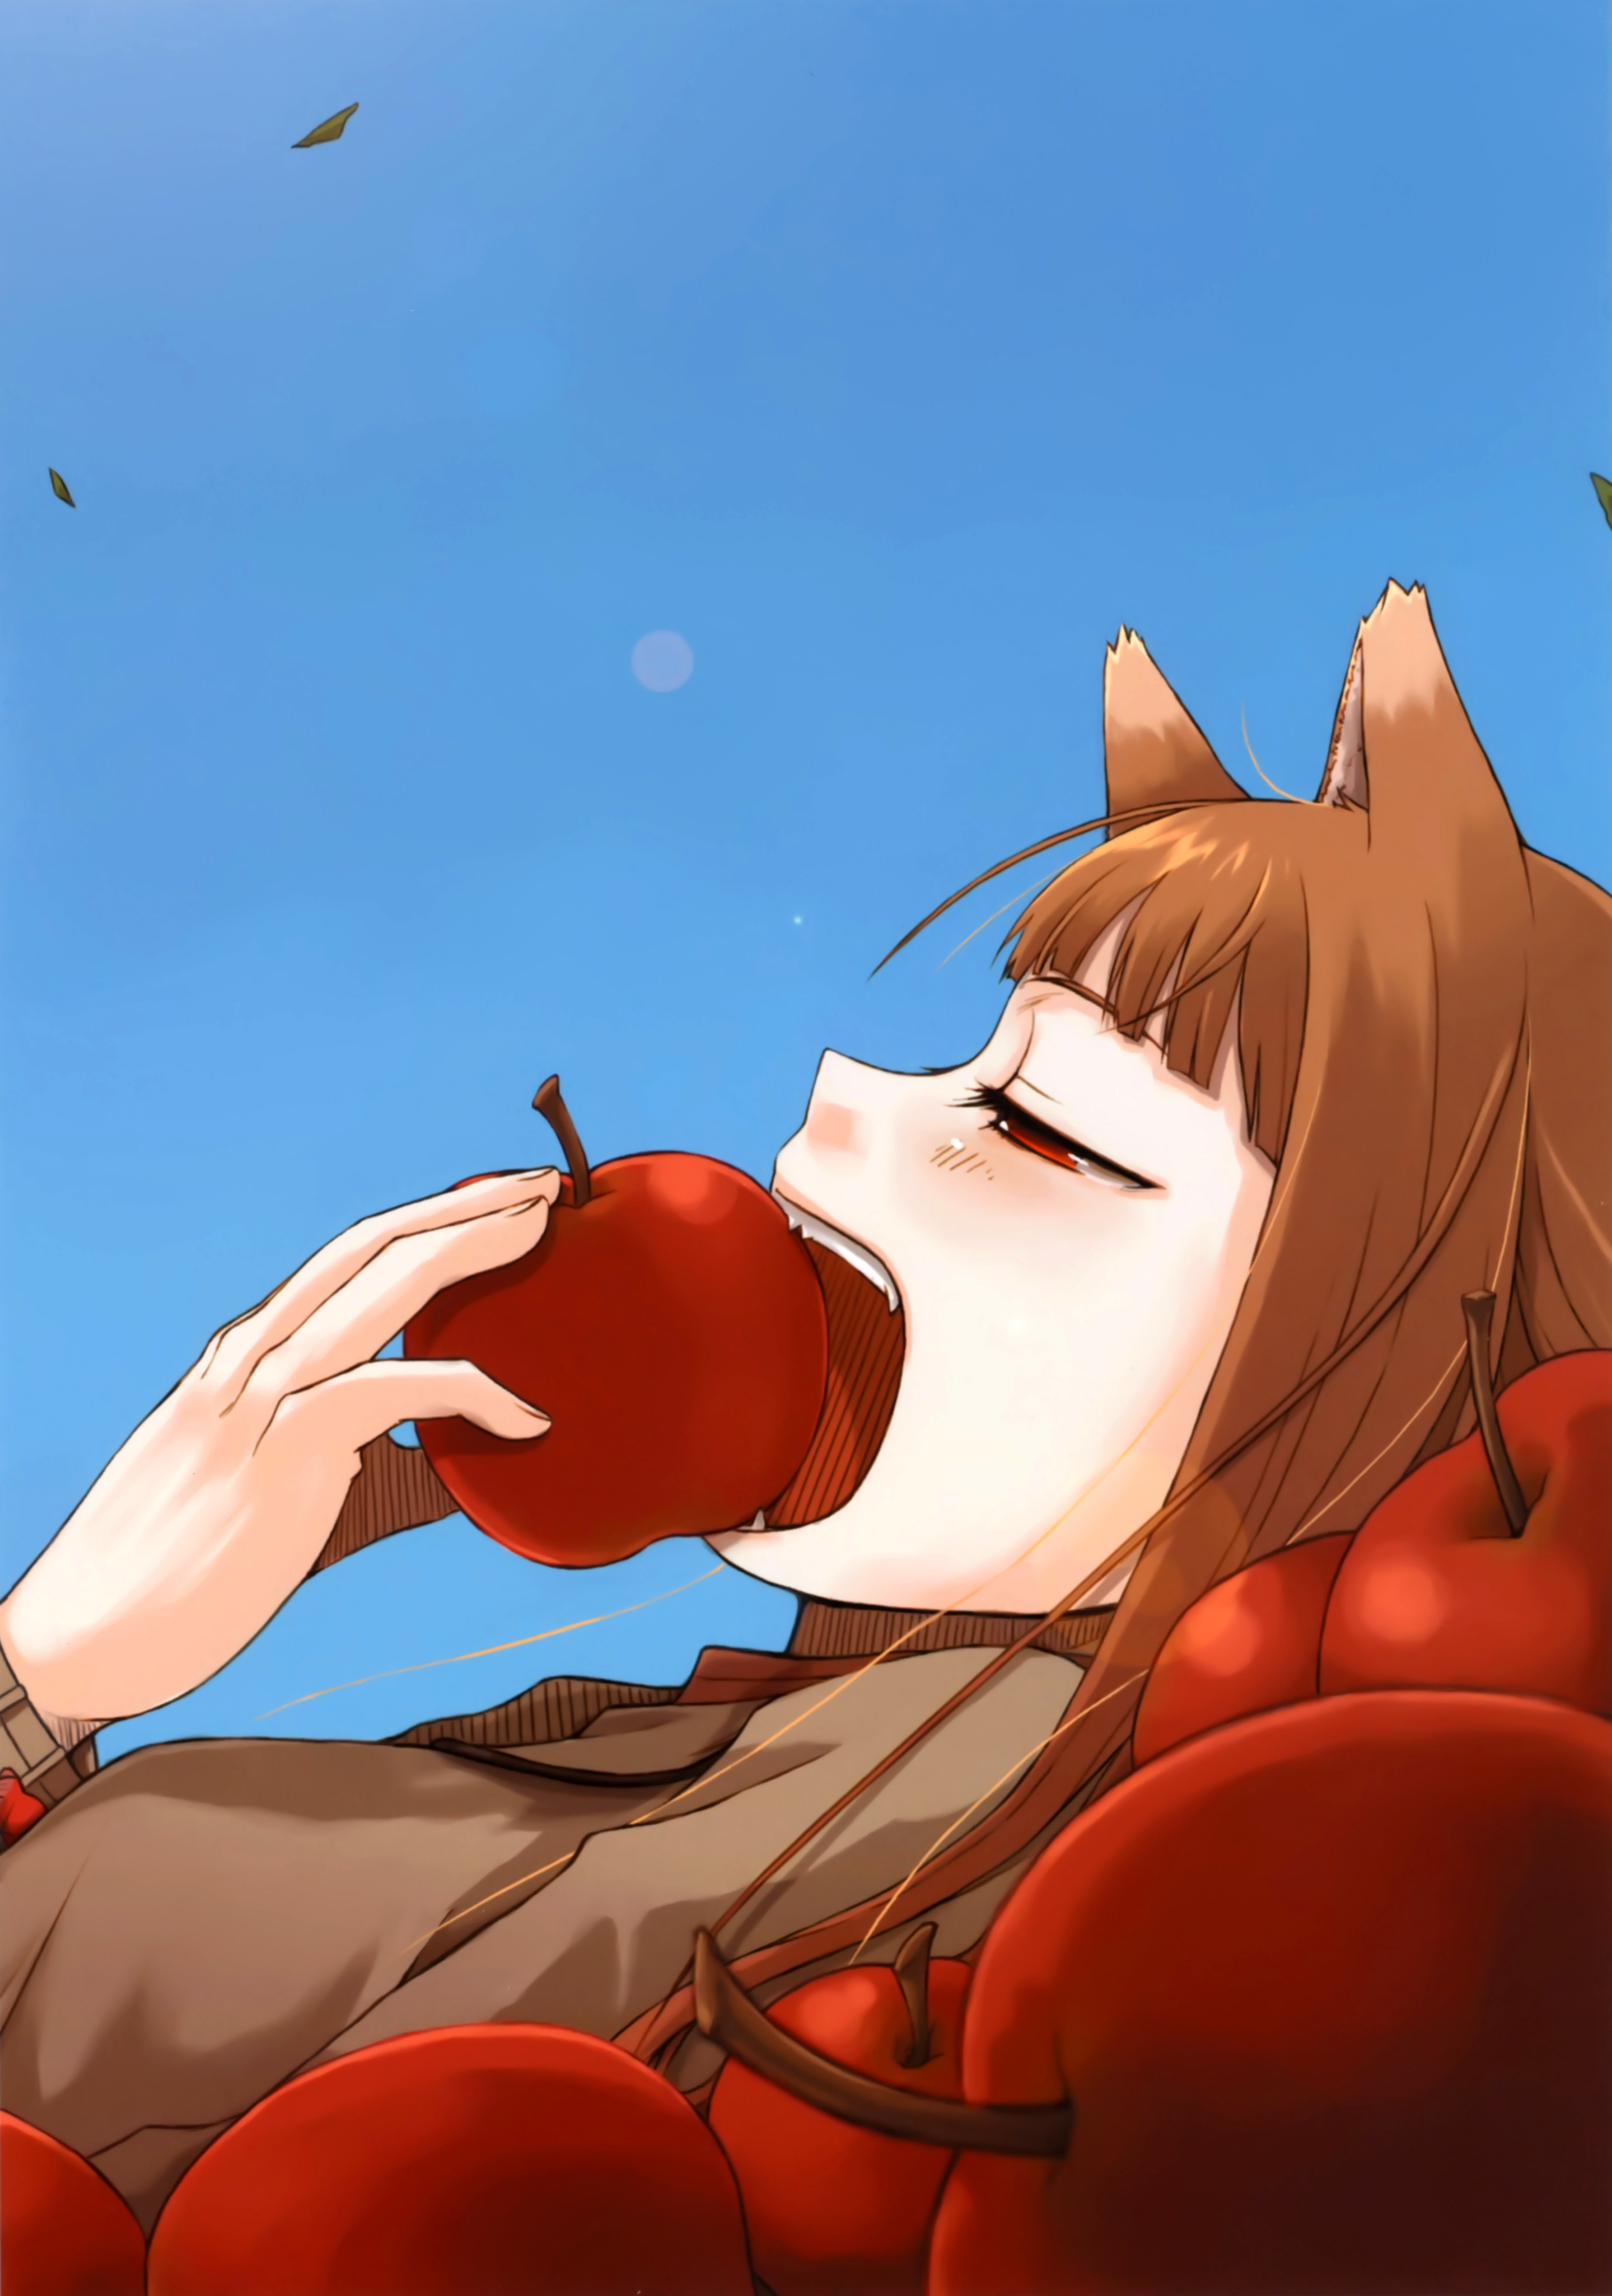 Spice and Wolf Image 2